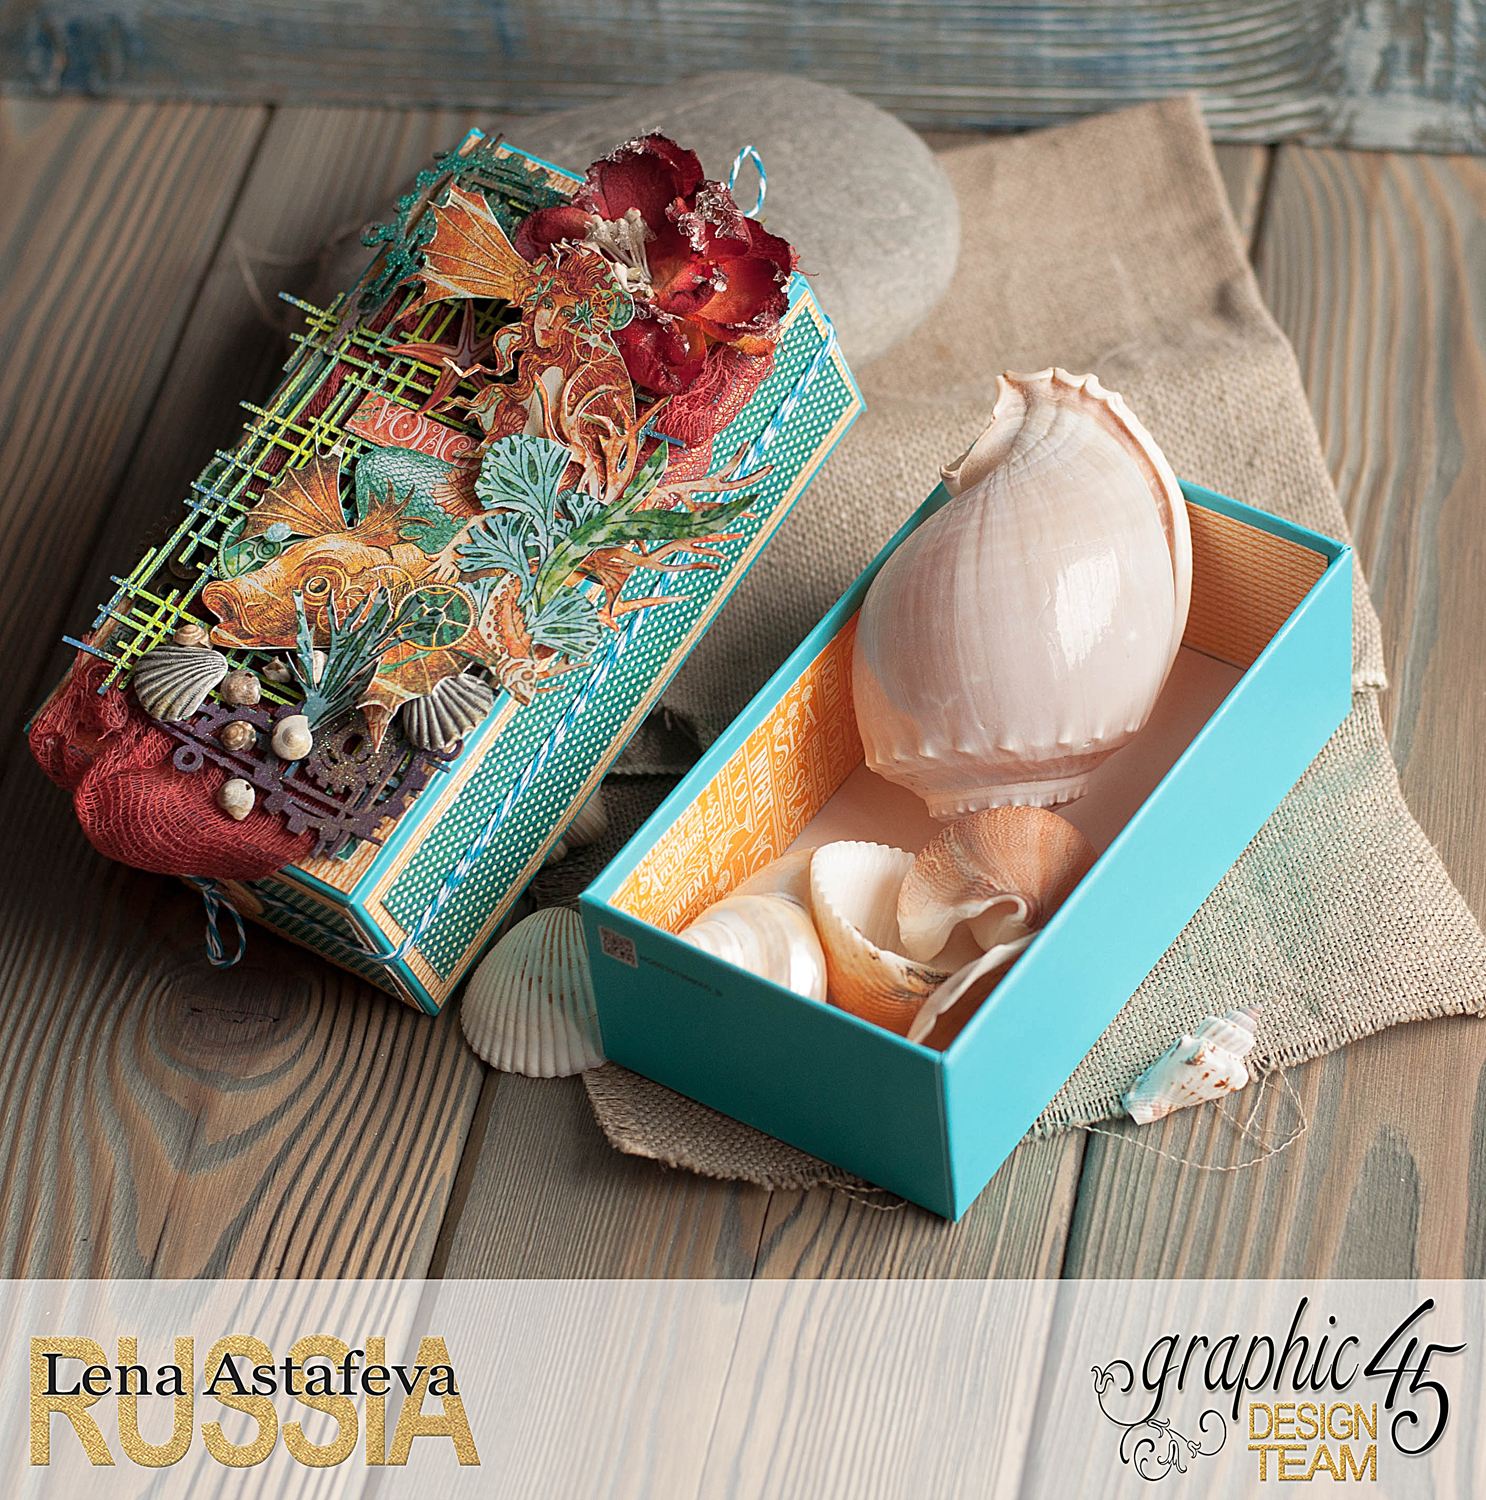 Box-Voyage Beneath the Sea-Graphic 45- by Lena Astafeva-25.jpg